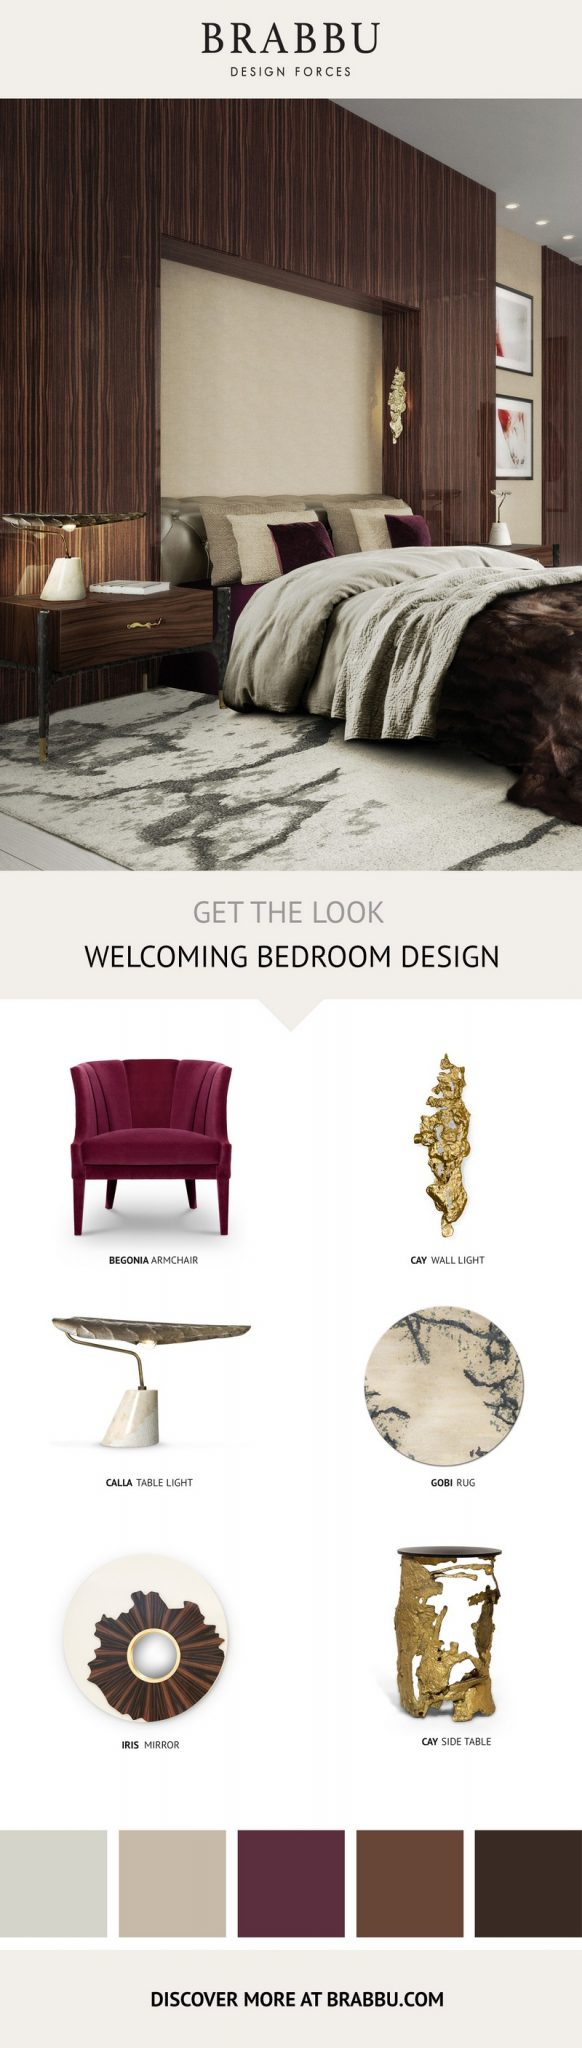 Get-The-Look-6 home decor Remodel Your Home Decor with Remarkable Mood Boards from Brabbu Get The Look 6